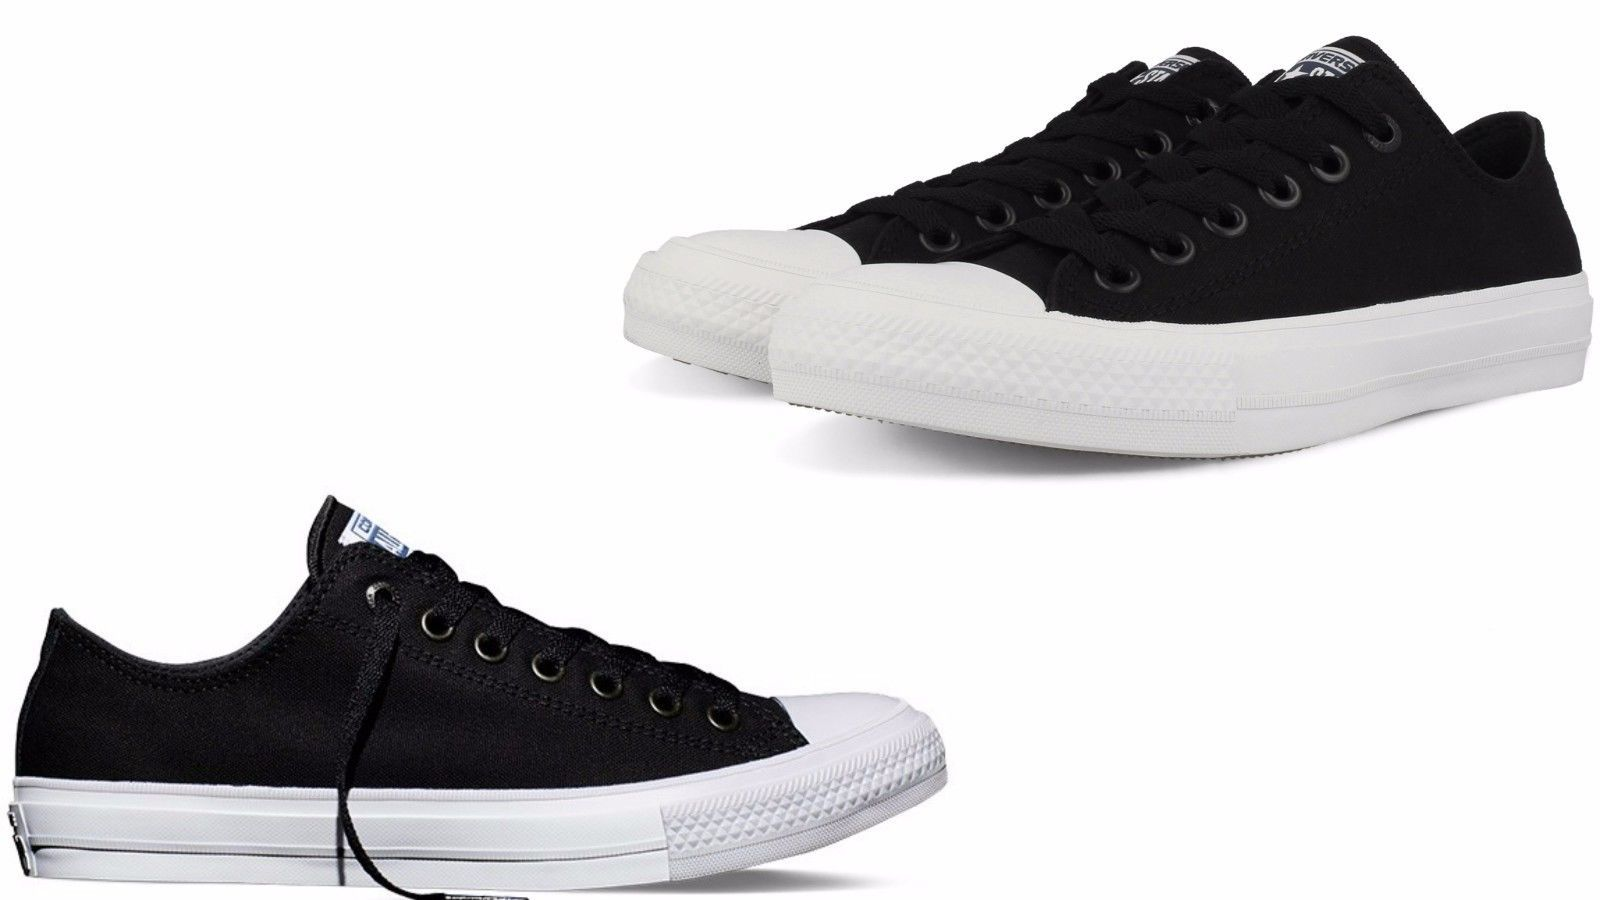 e2f5bf7dad56 Unisex Adult Shoes 155196  Converse Men S Chuck Taylor Ii Ox Low Top 150149C  Black Canvas -  BUY IT NOW ONLY   47.5 on eBay!